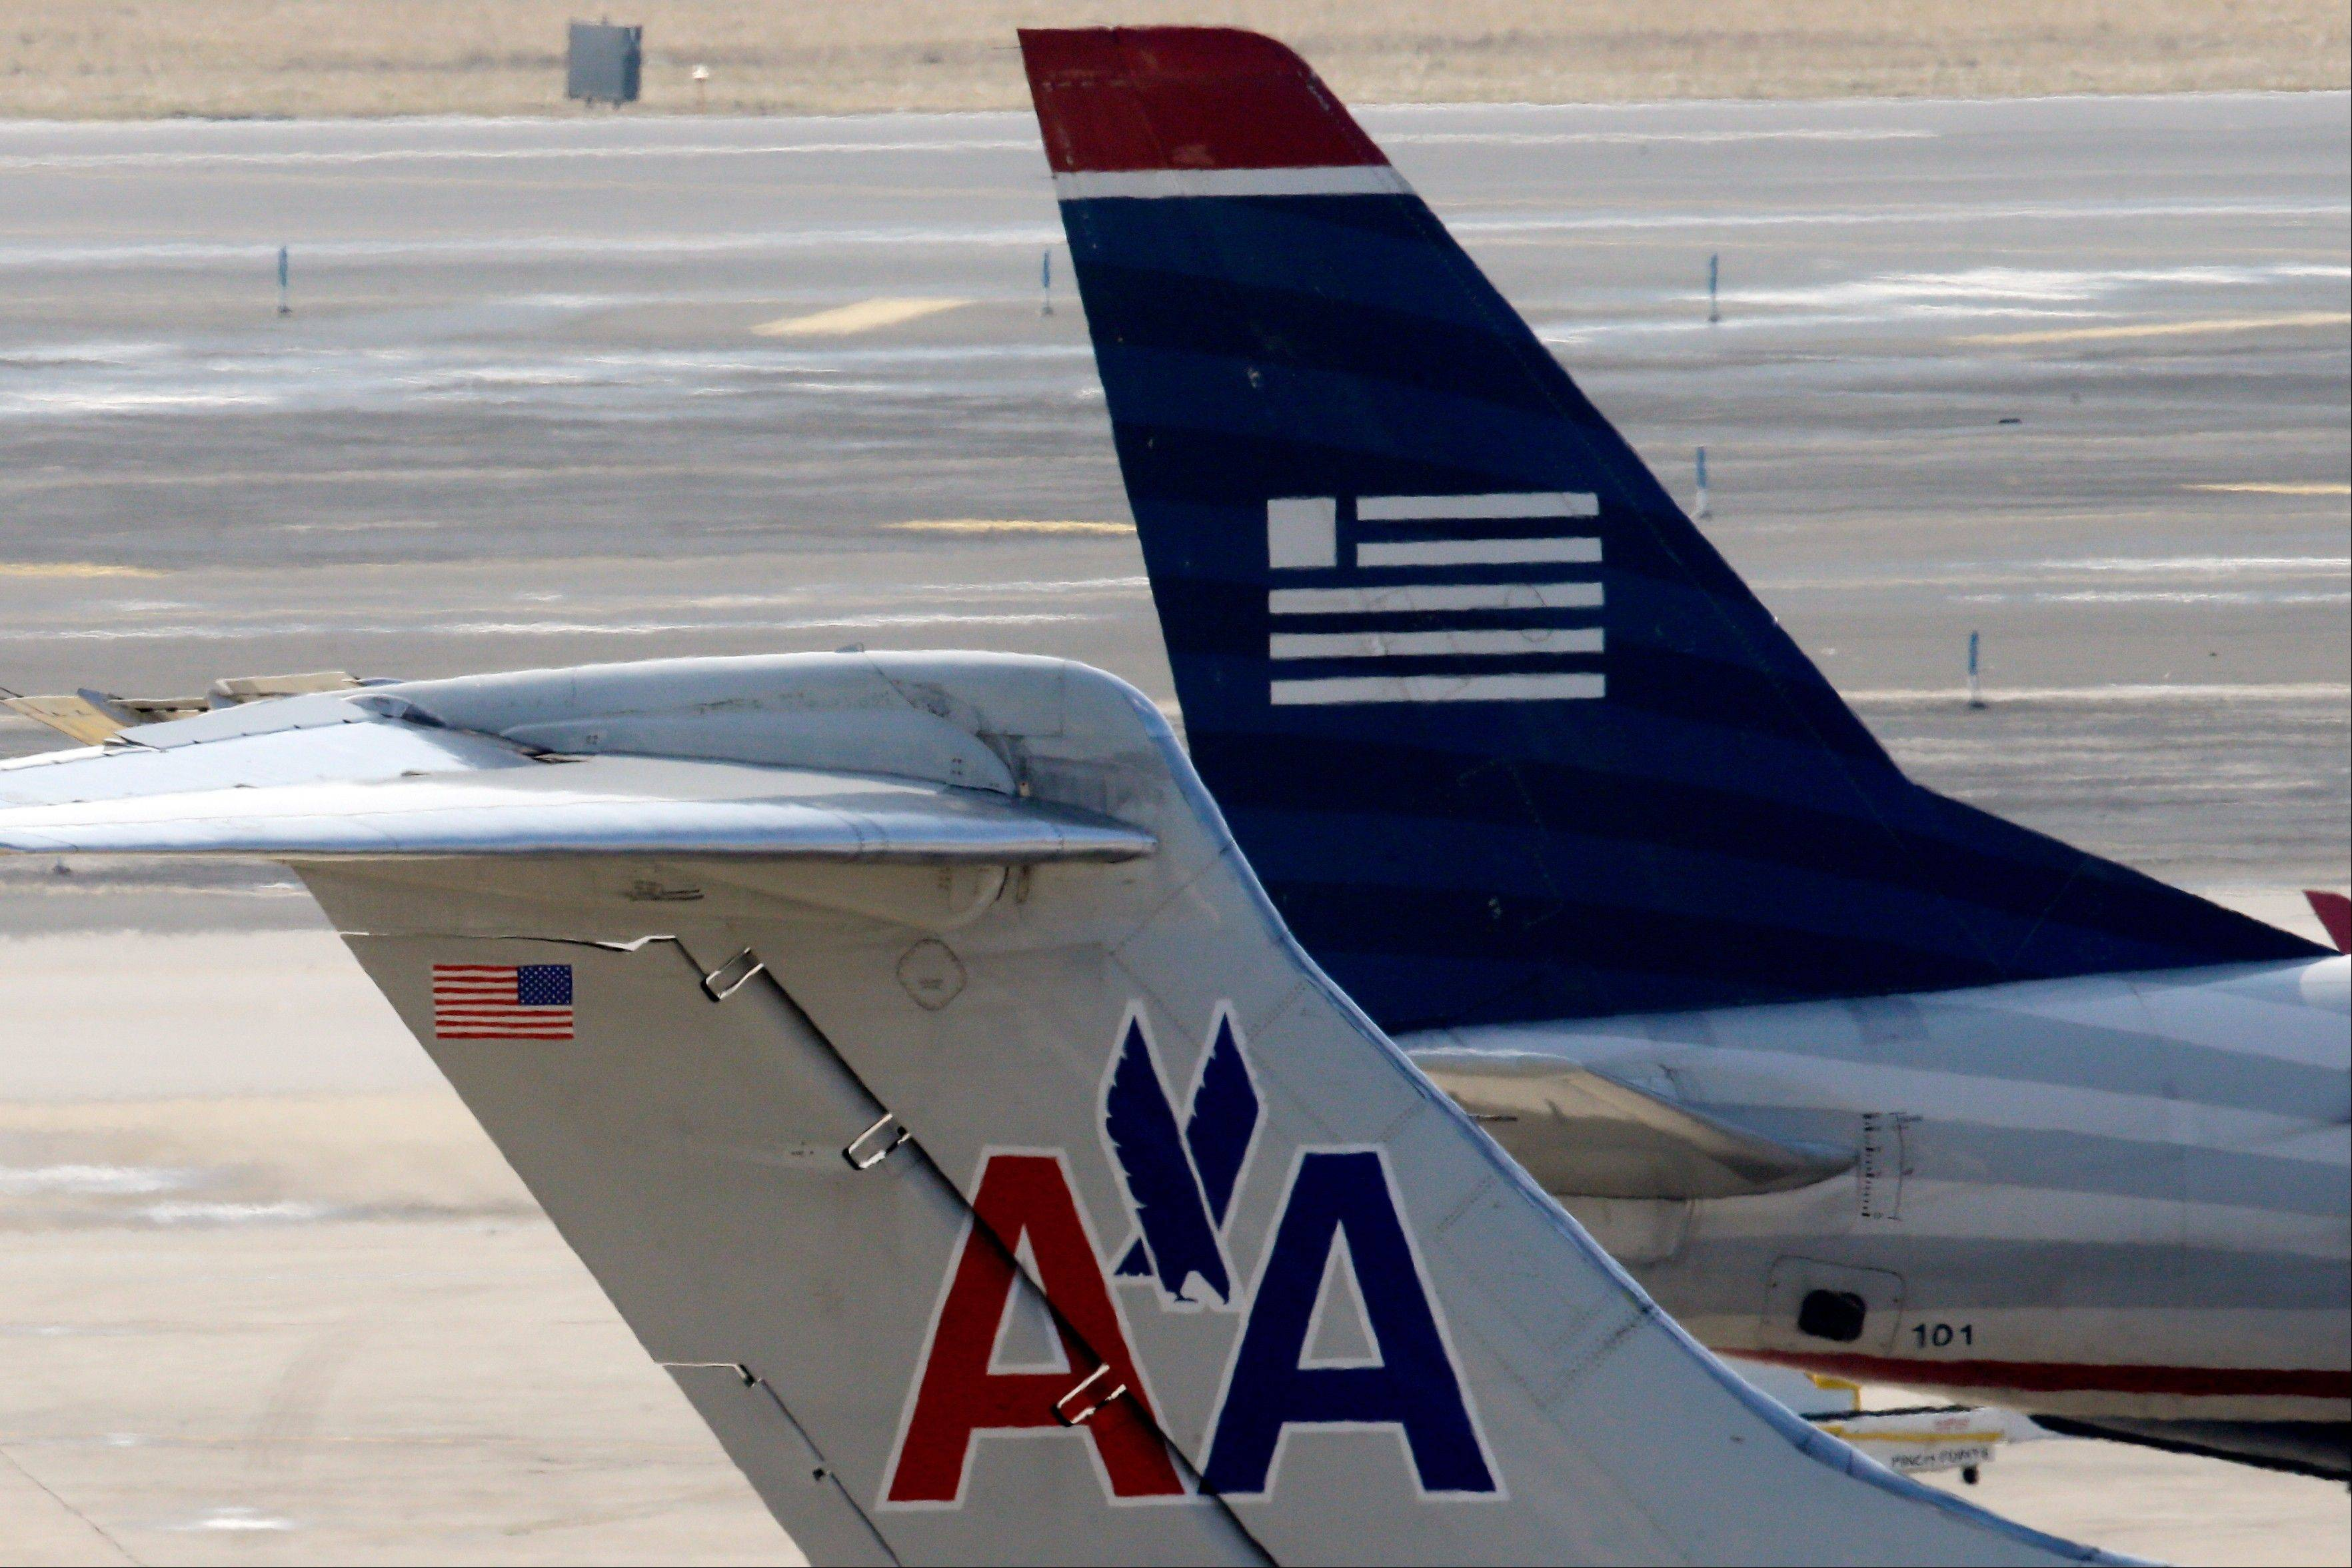 The Justice Department and a number of state attorneys general on Tuesday challenged a proposed $11 billion merger between US Airways Group Inc. and American Airlines� parent company, AMR Corp.